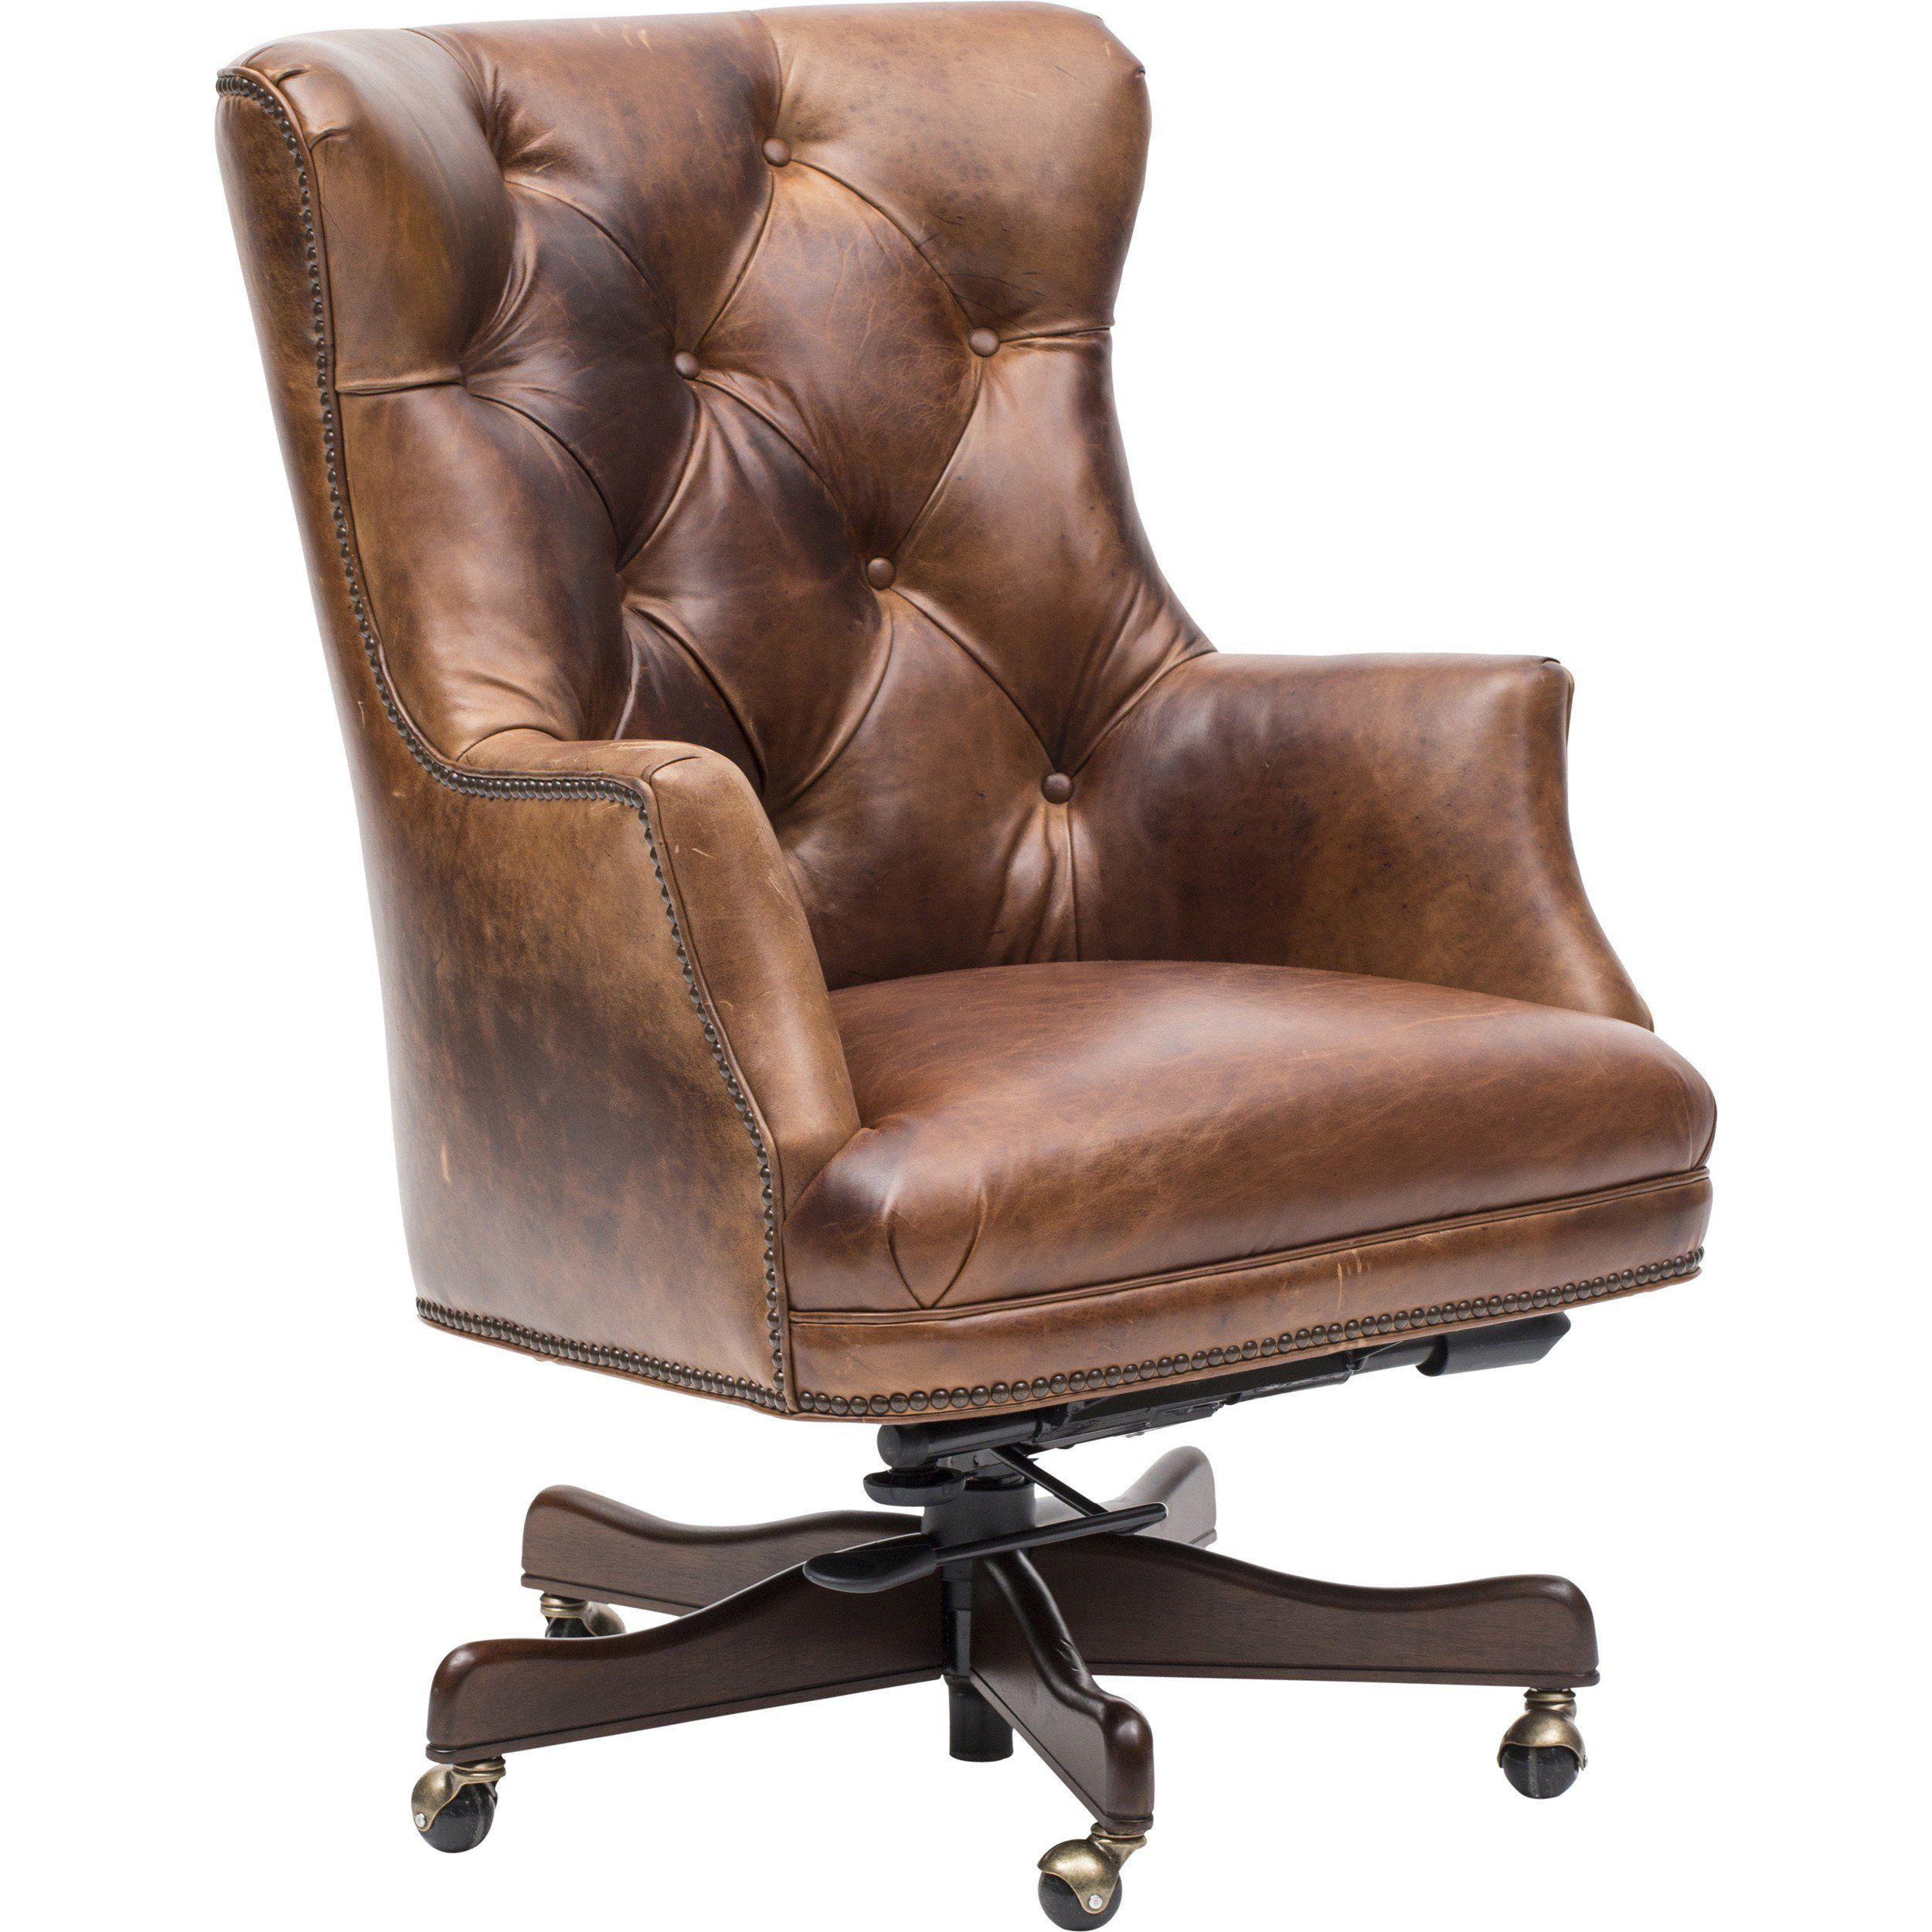 Theodore Executive Leather Office Chair (With Images